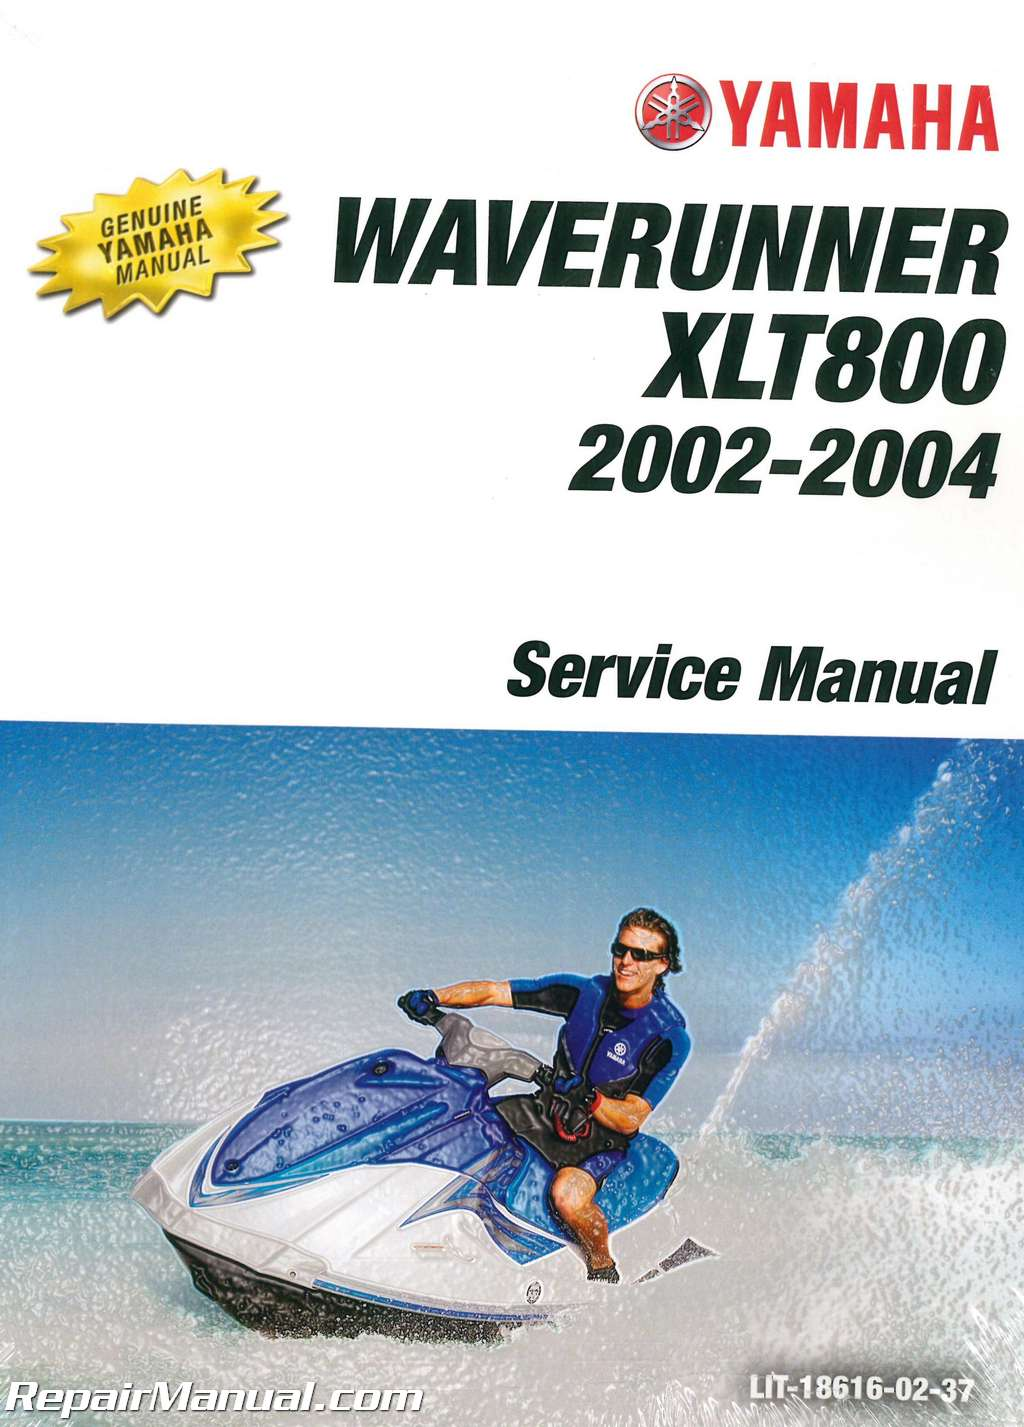 2002 2004 yamaha xlt800 waverunner watercraft workshop service manual rh  repairmanual com 2003 Yamaha Waverunner XLT 800 Yamaha XLT 800 Problems